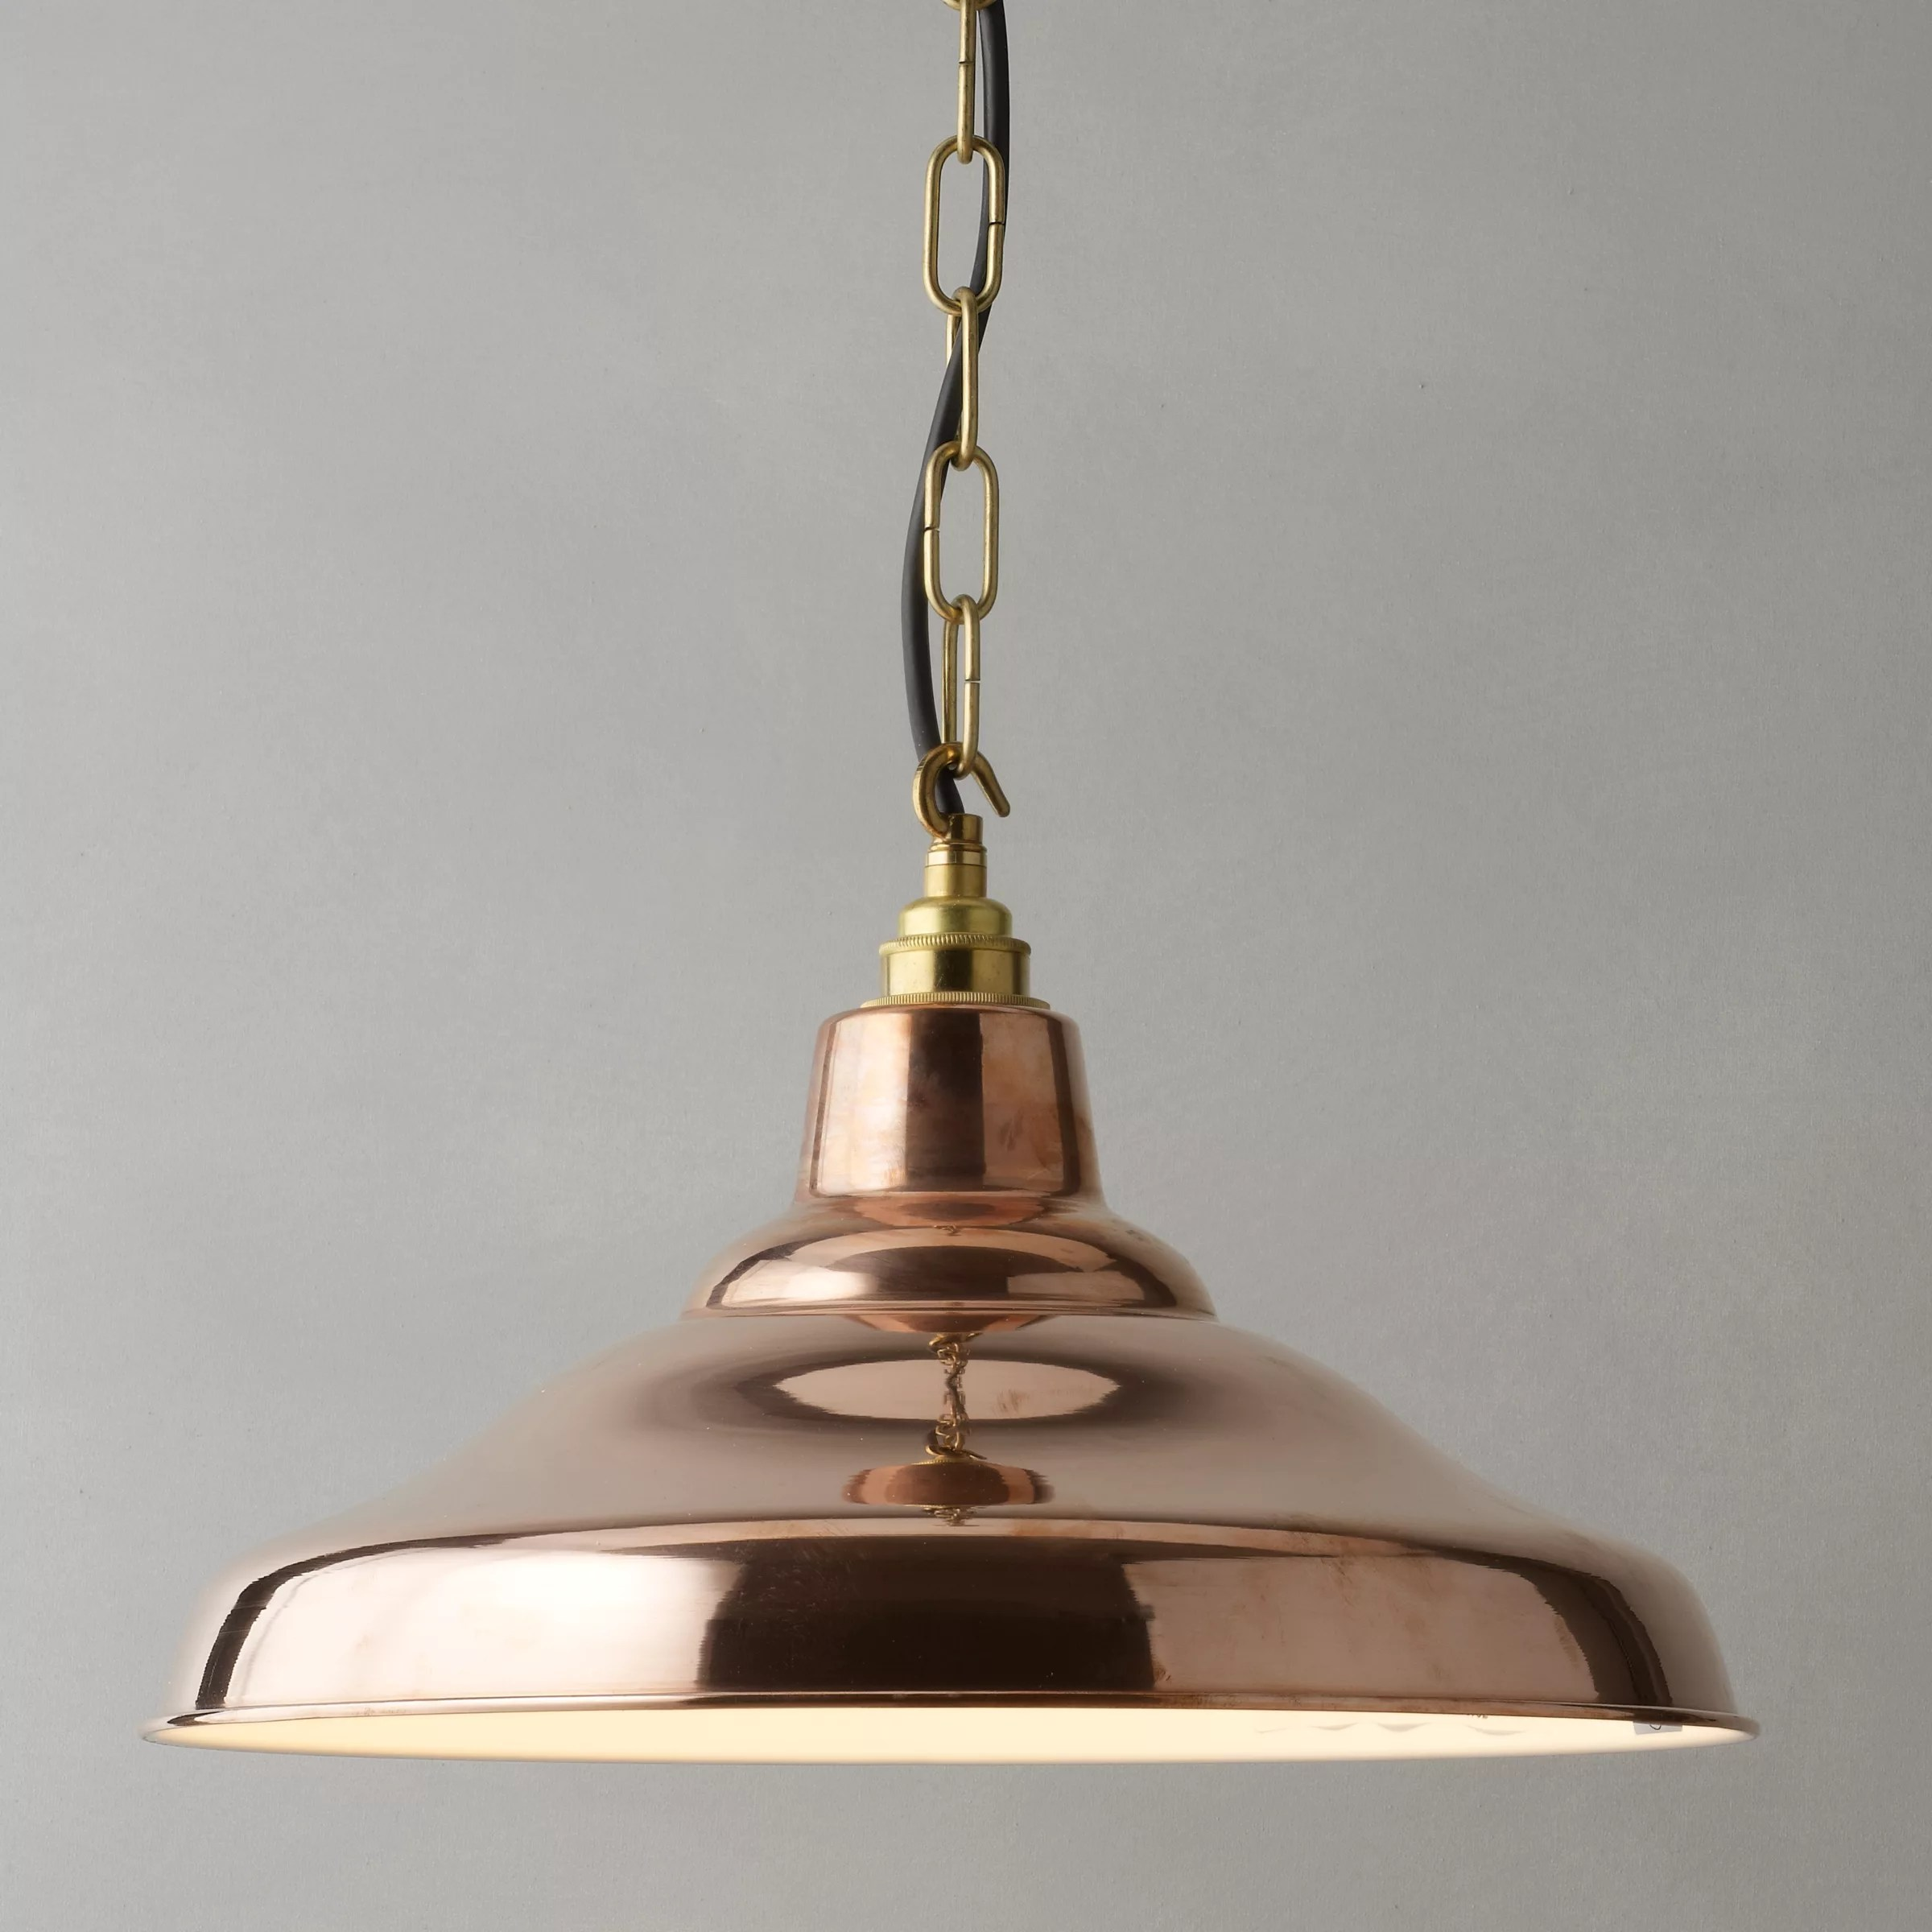 John Lewis Lighting Pendant